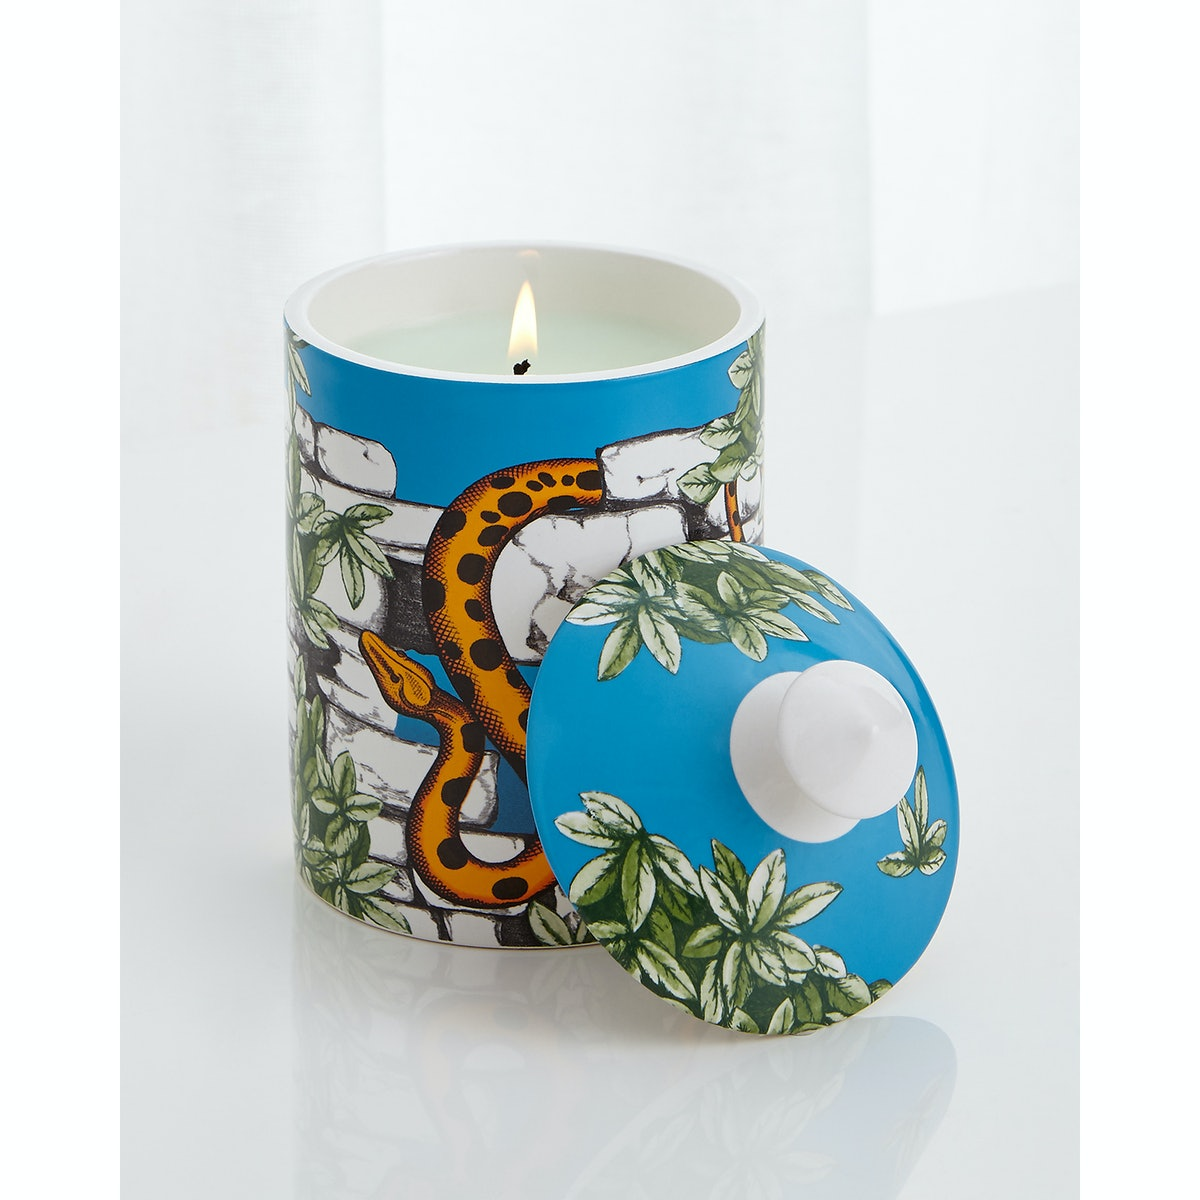 Fornasetti-candle-from-Neiman-Marcus